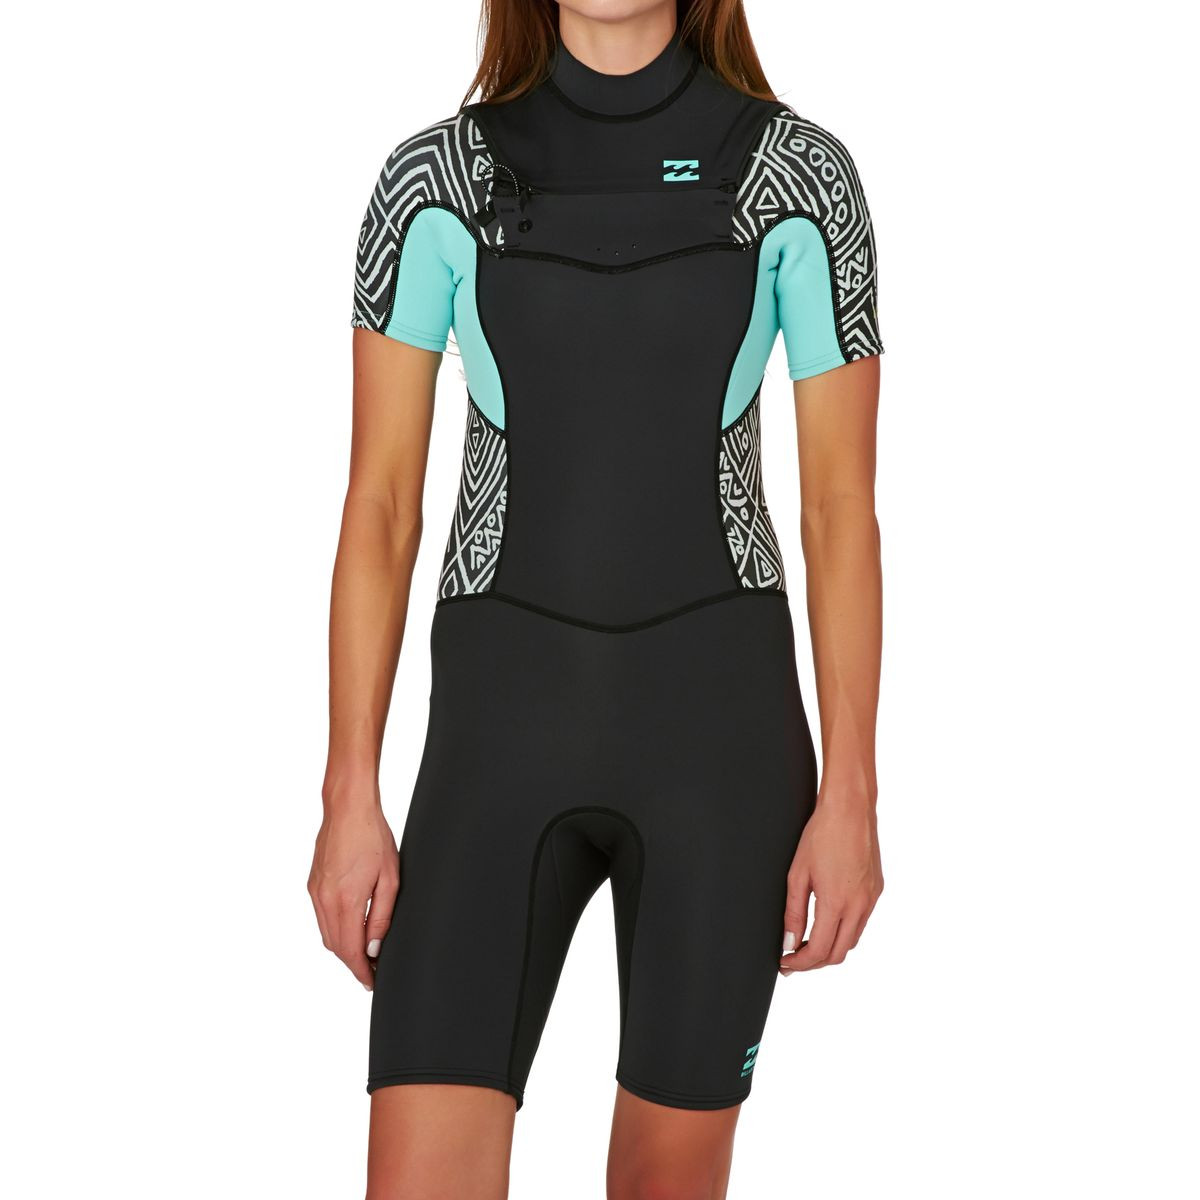 Billabong Womens Synergy 2mm Chest Zip Short Sleeve Shorty Wetsuit - Geo Diamond